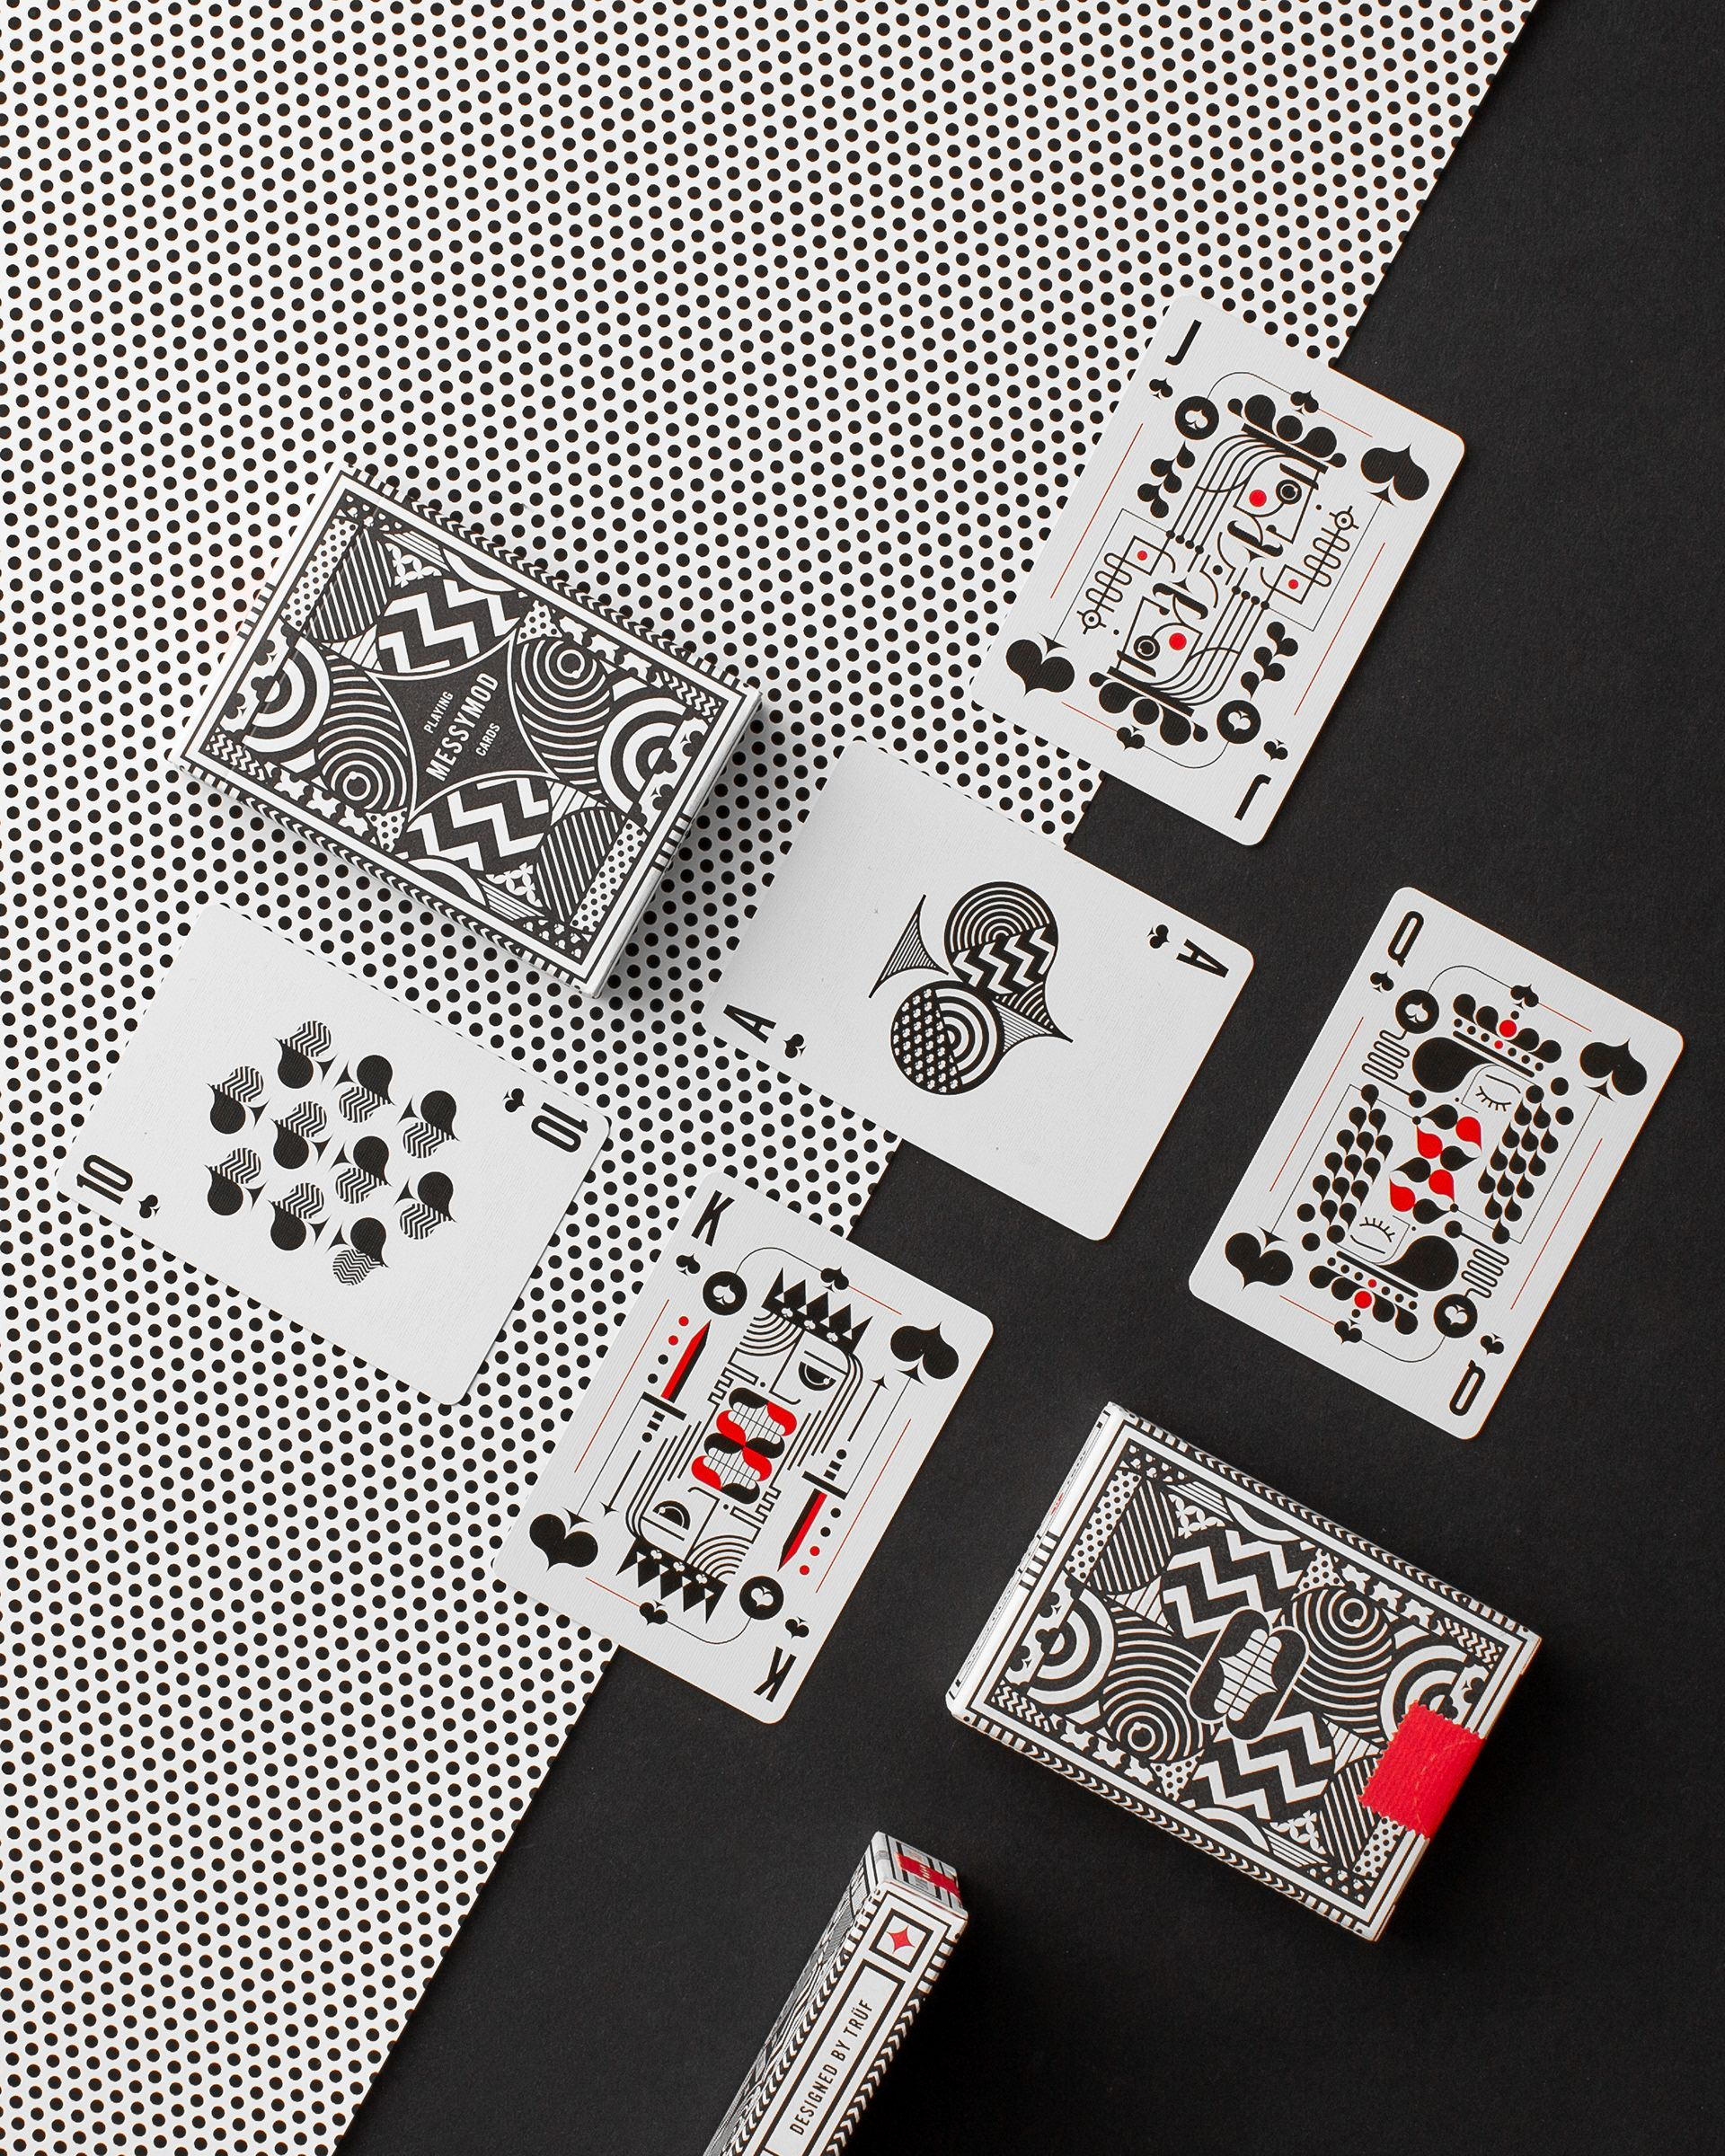 Quirky And Modern Design Playing Cards By Truf Creative For Art Of